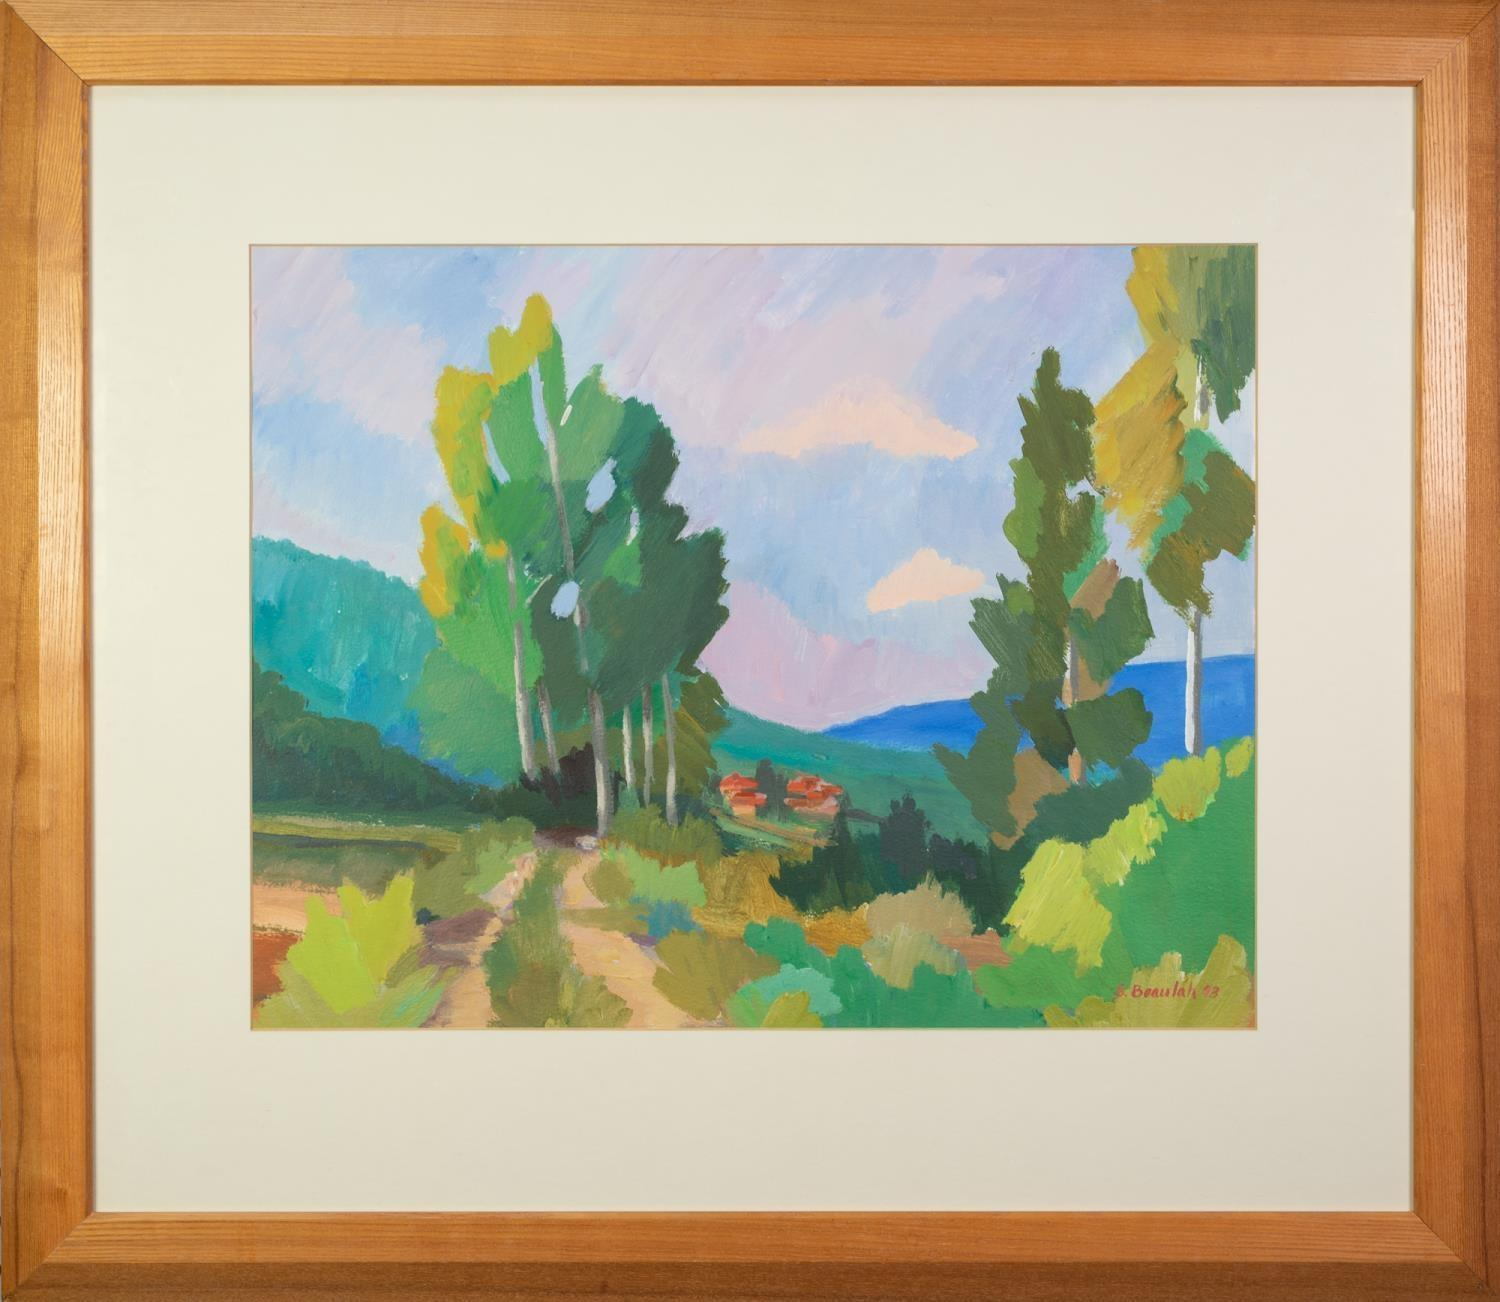 SUSAN BEAULAH (b.1943) ACRYLIC ON BOARD ?Country Lane, Tuscany? Signed and dated (19)93, titled to - Image 2 of 2